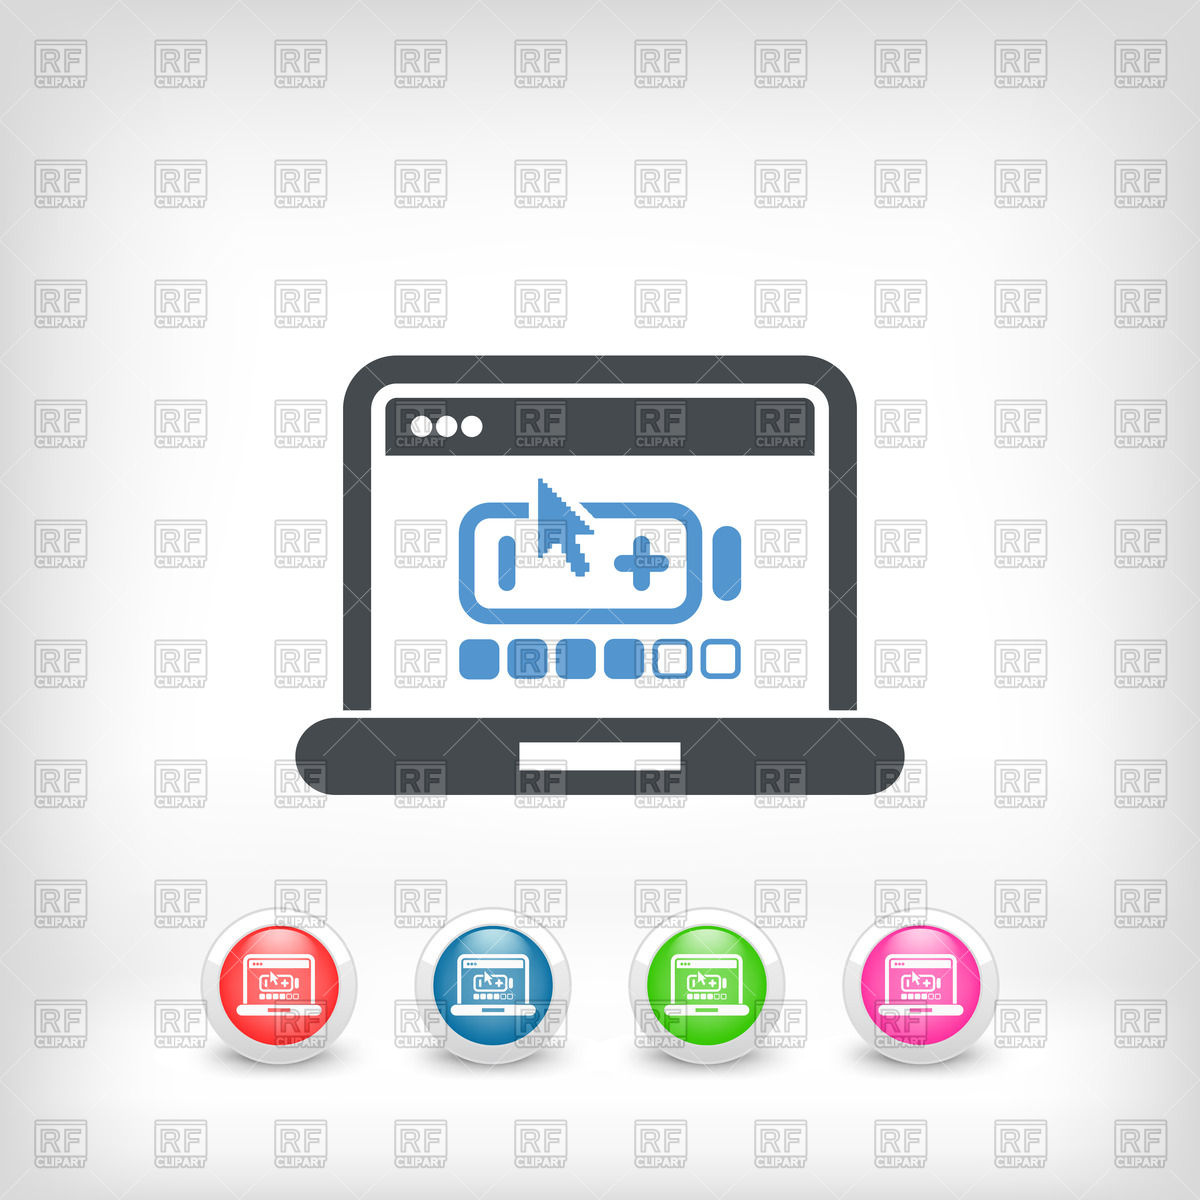 1200x1200 Laptop Battery Charge Level Icon Vector Image Vector Artwork Of